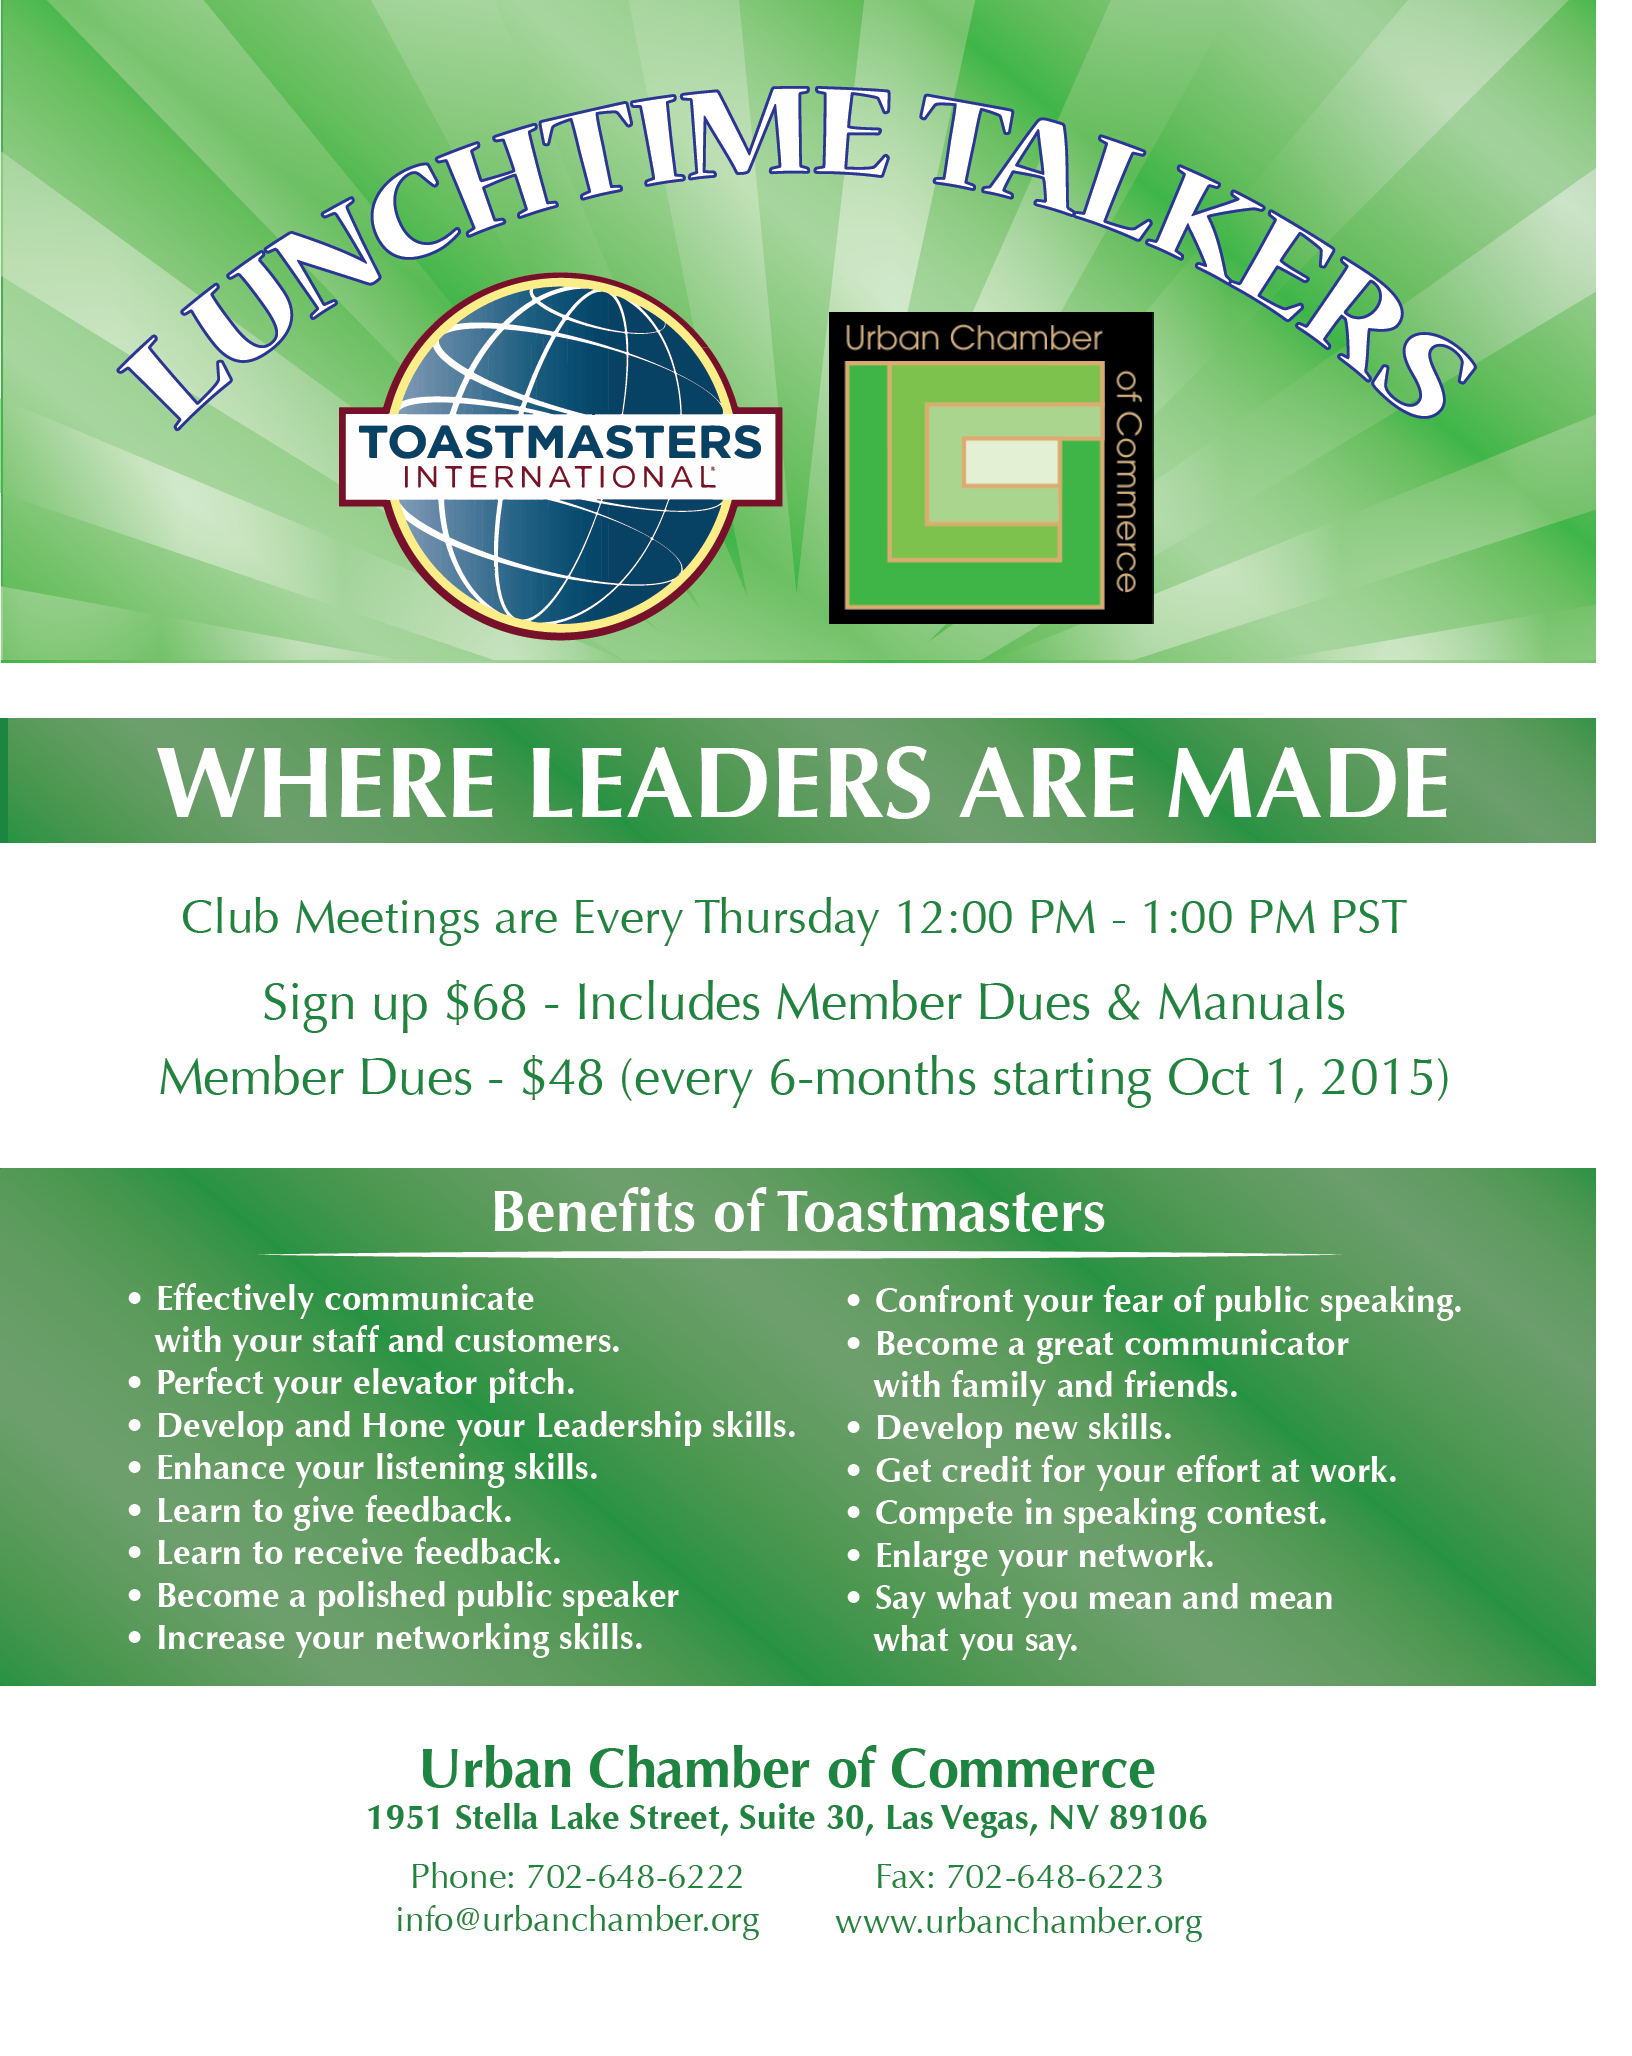 toastmasters lunchtime talkers nov 24 2016 urban chamber of toastmasters lunchtime talkers nov 24 2016 urban chamber of commerce nv